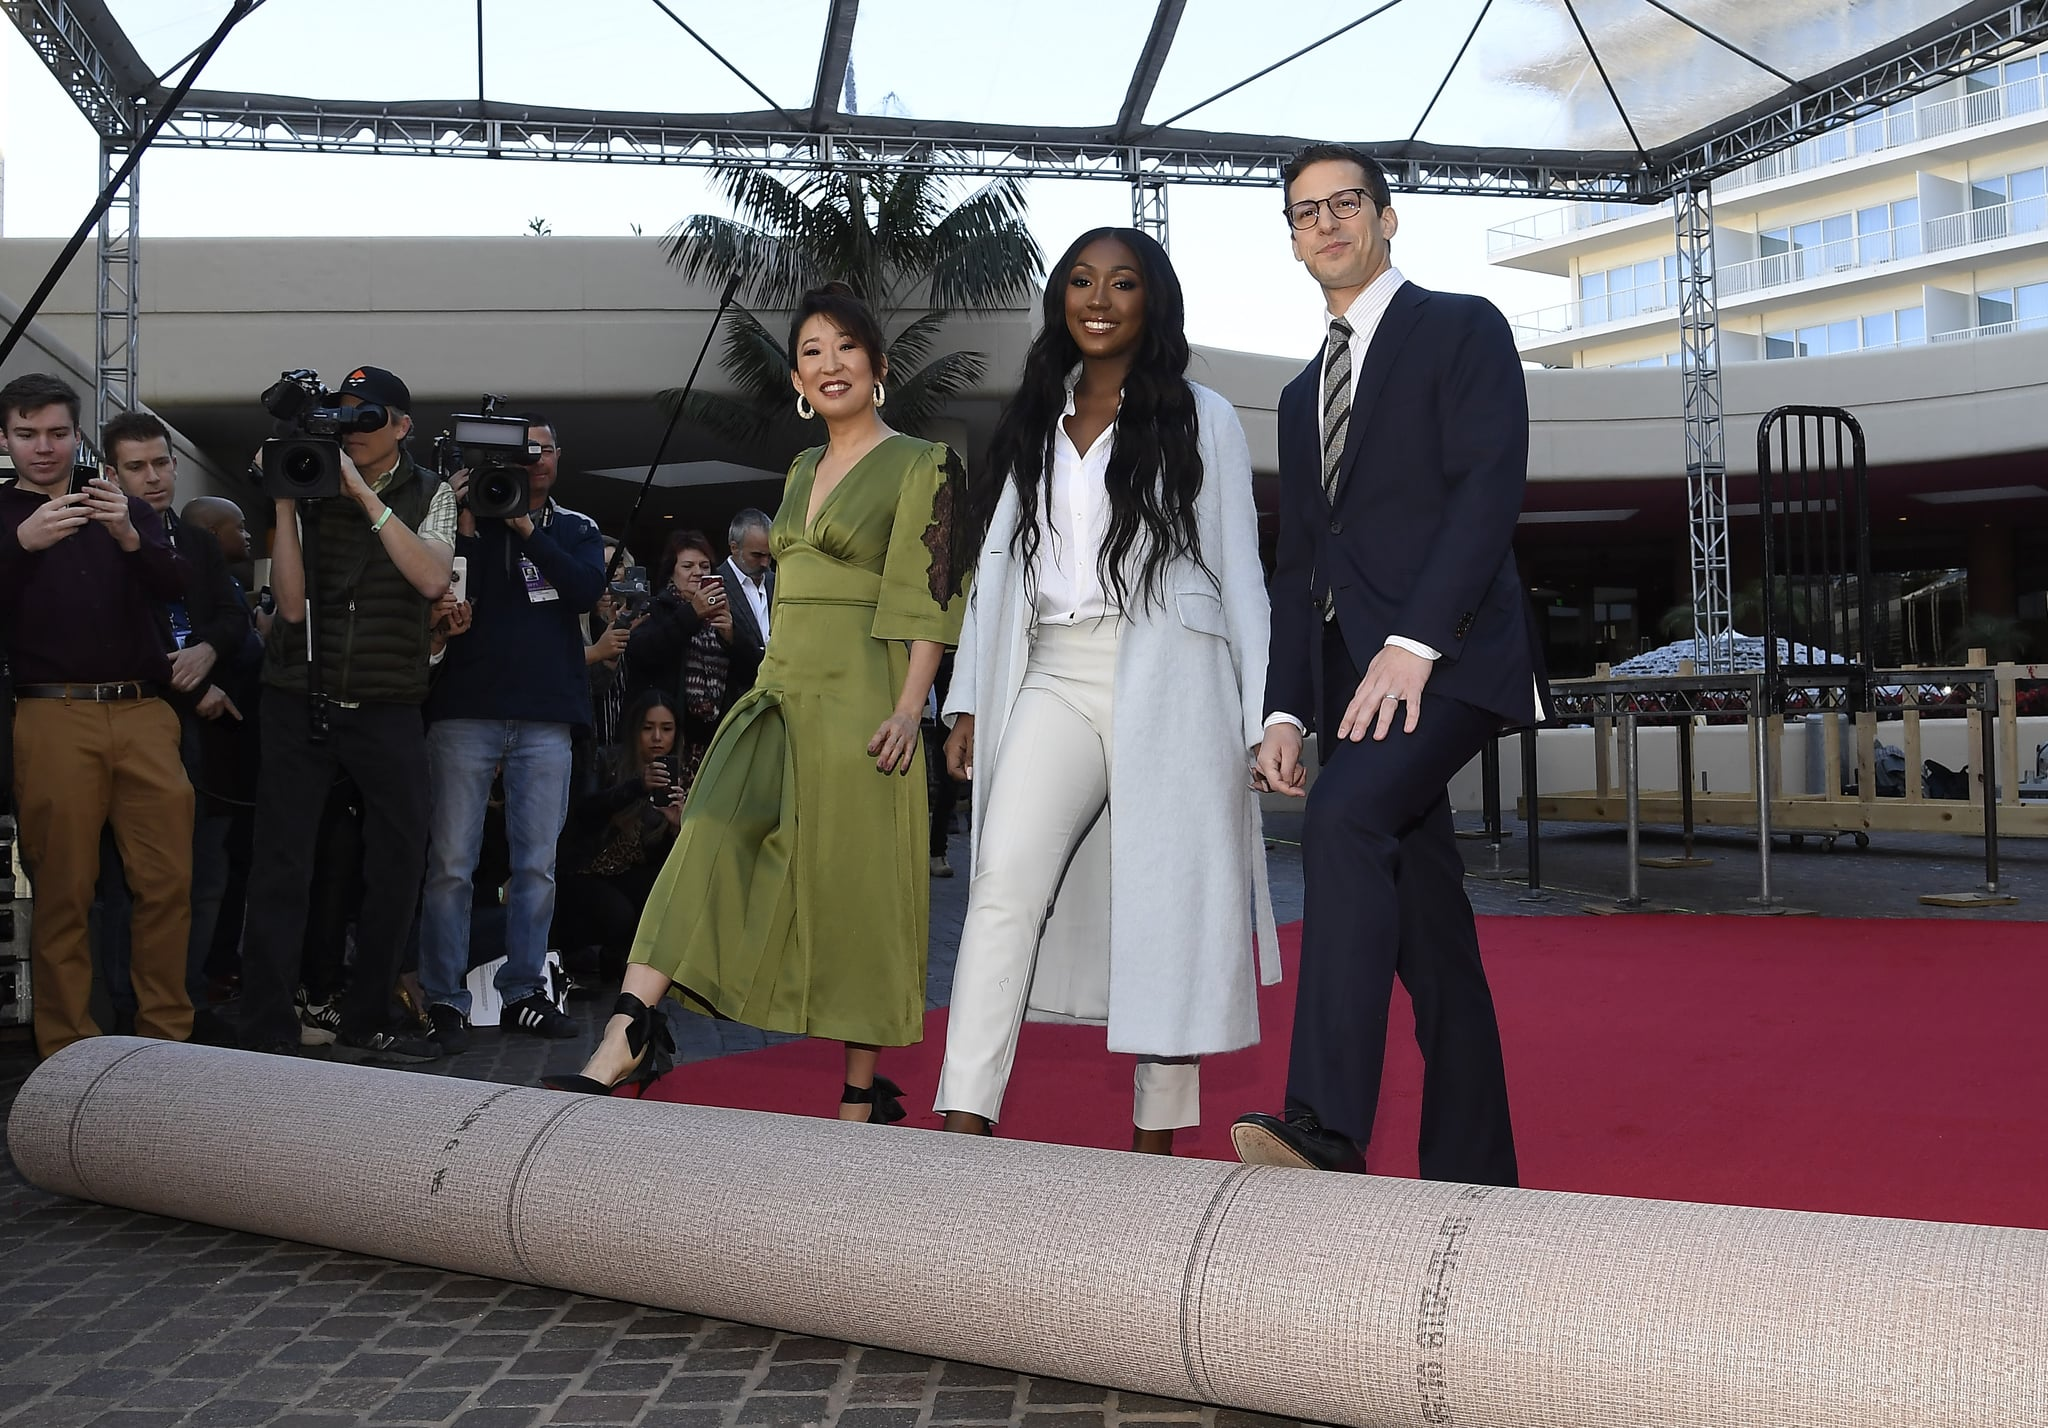 BEVERLY HILLS, CA - JANUARY 03: Sandra Oh (L) and Andy Samberg (R), hosts of the 76th Annual Golden Globe Awards, and Isan Elba (C), Golden Globe Ambassador, rollout the red carpet during a preview day at The Beverly Hilton Hotel on January 3, 2019 in Beverly Hills, California. (Photo by Kevork Djansezian/Getty Images)